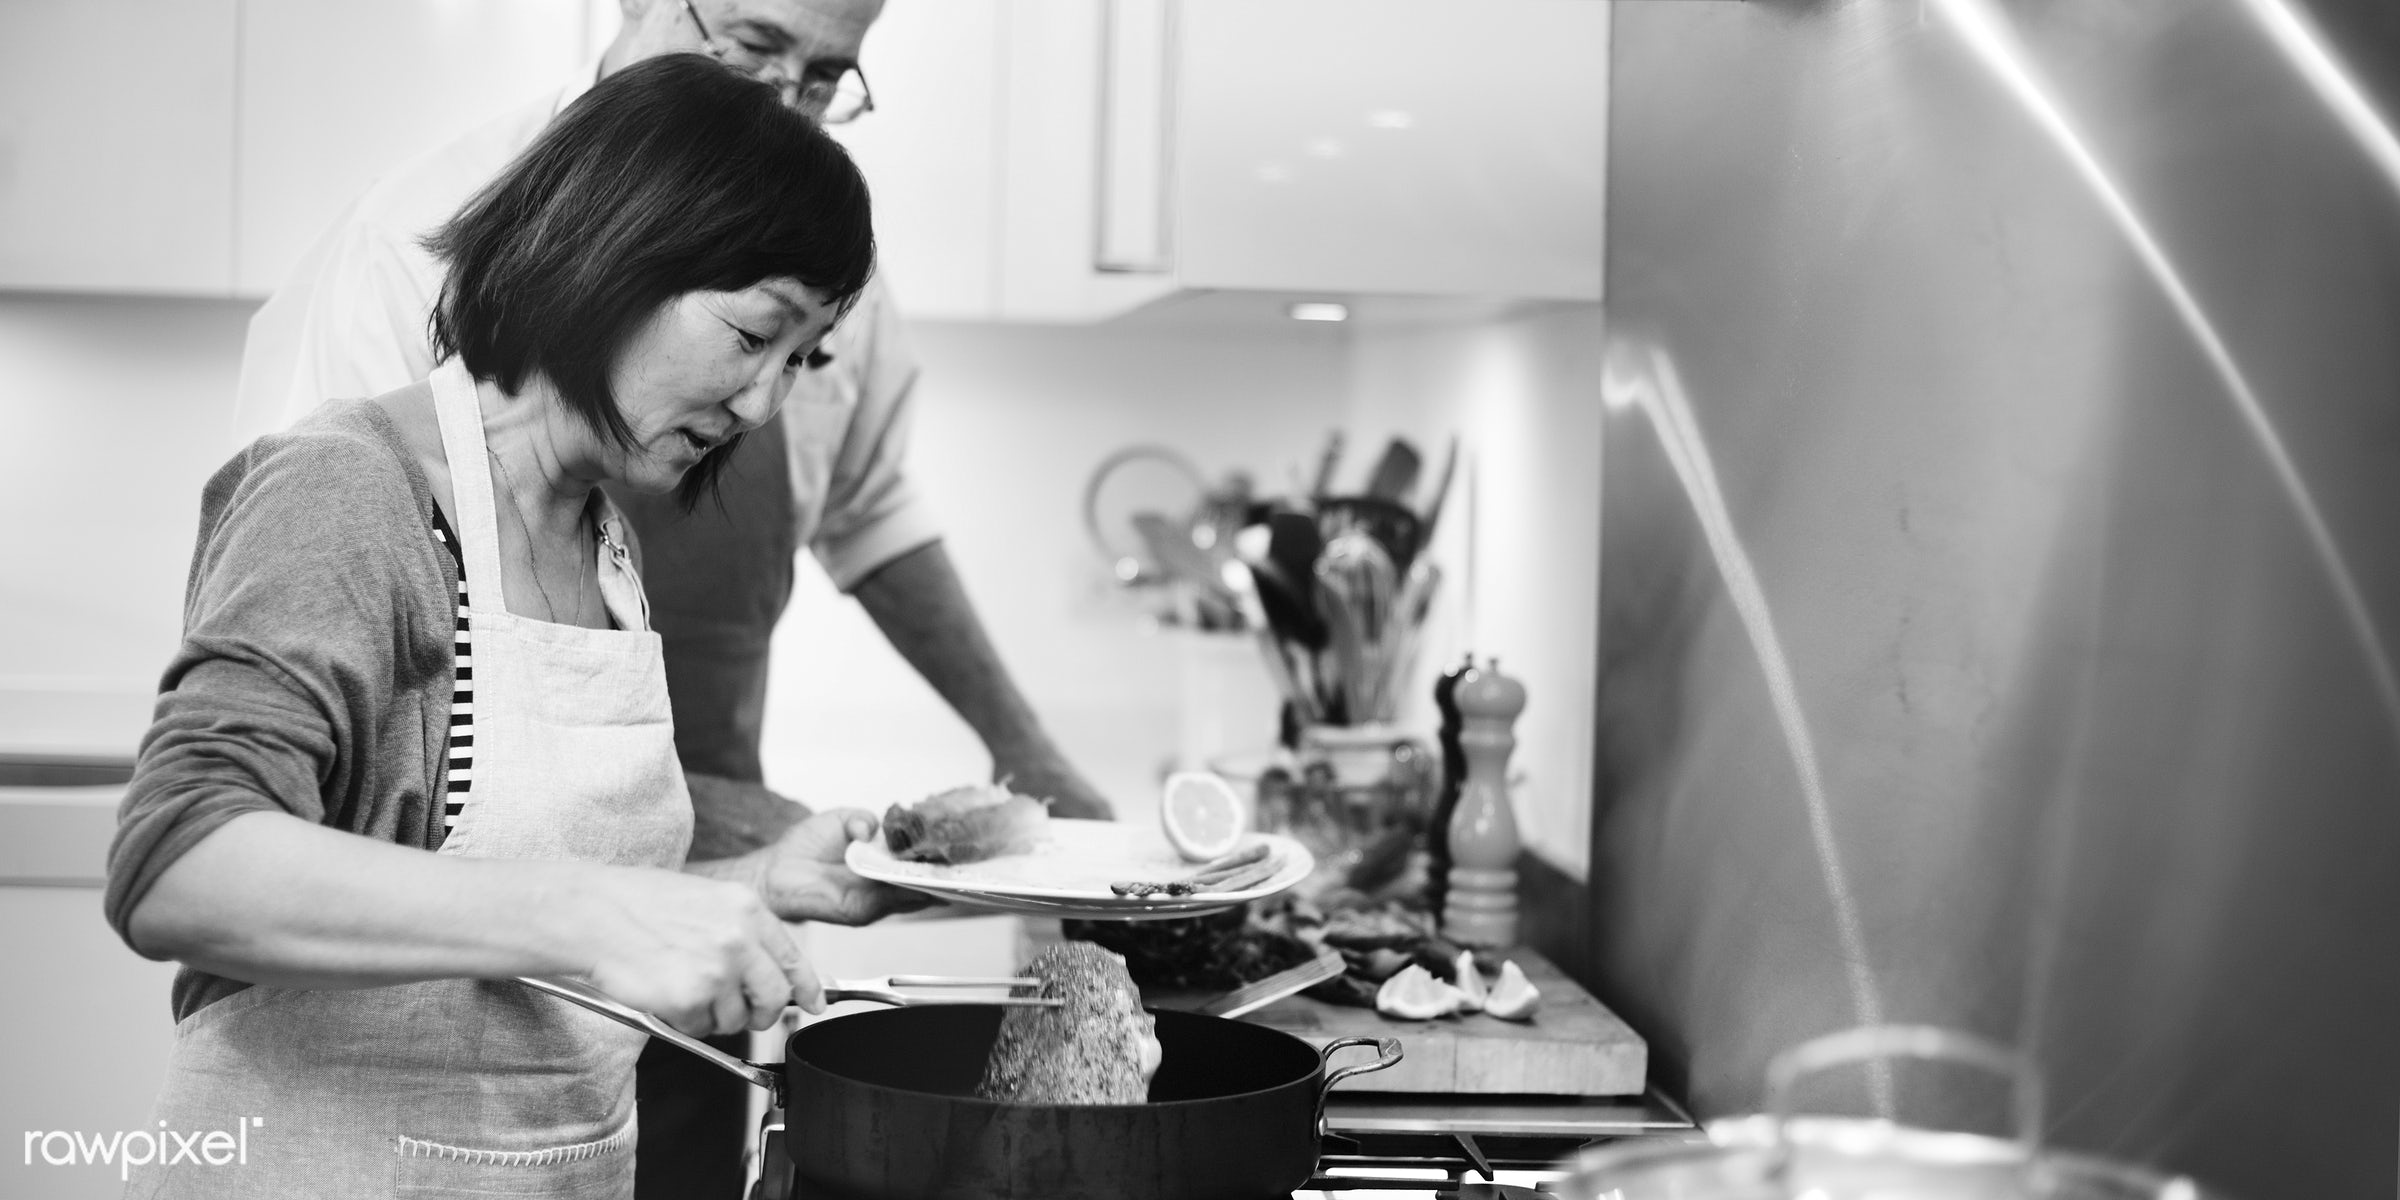 cook, couple, grandfather, joy, adult, bonding, bowl, chef, cooked, cooking, cuisine, culinary, dinner, enjoyment, equipment...